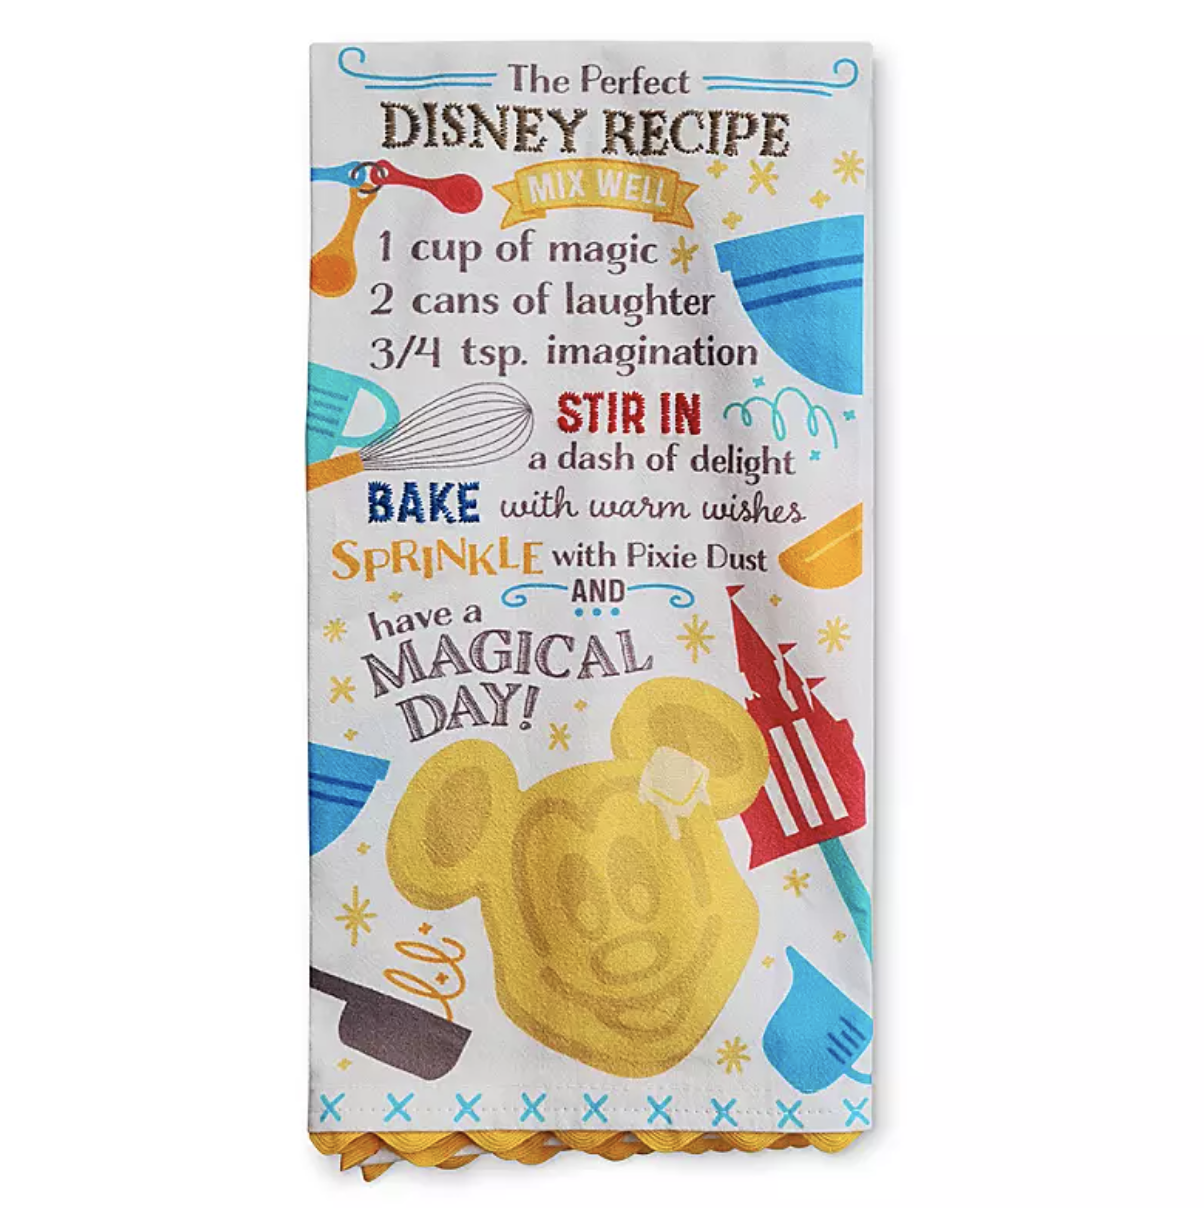 a dish towel that has a fake recipe for mickey waffles on it and different cooking icons